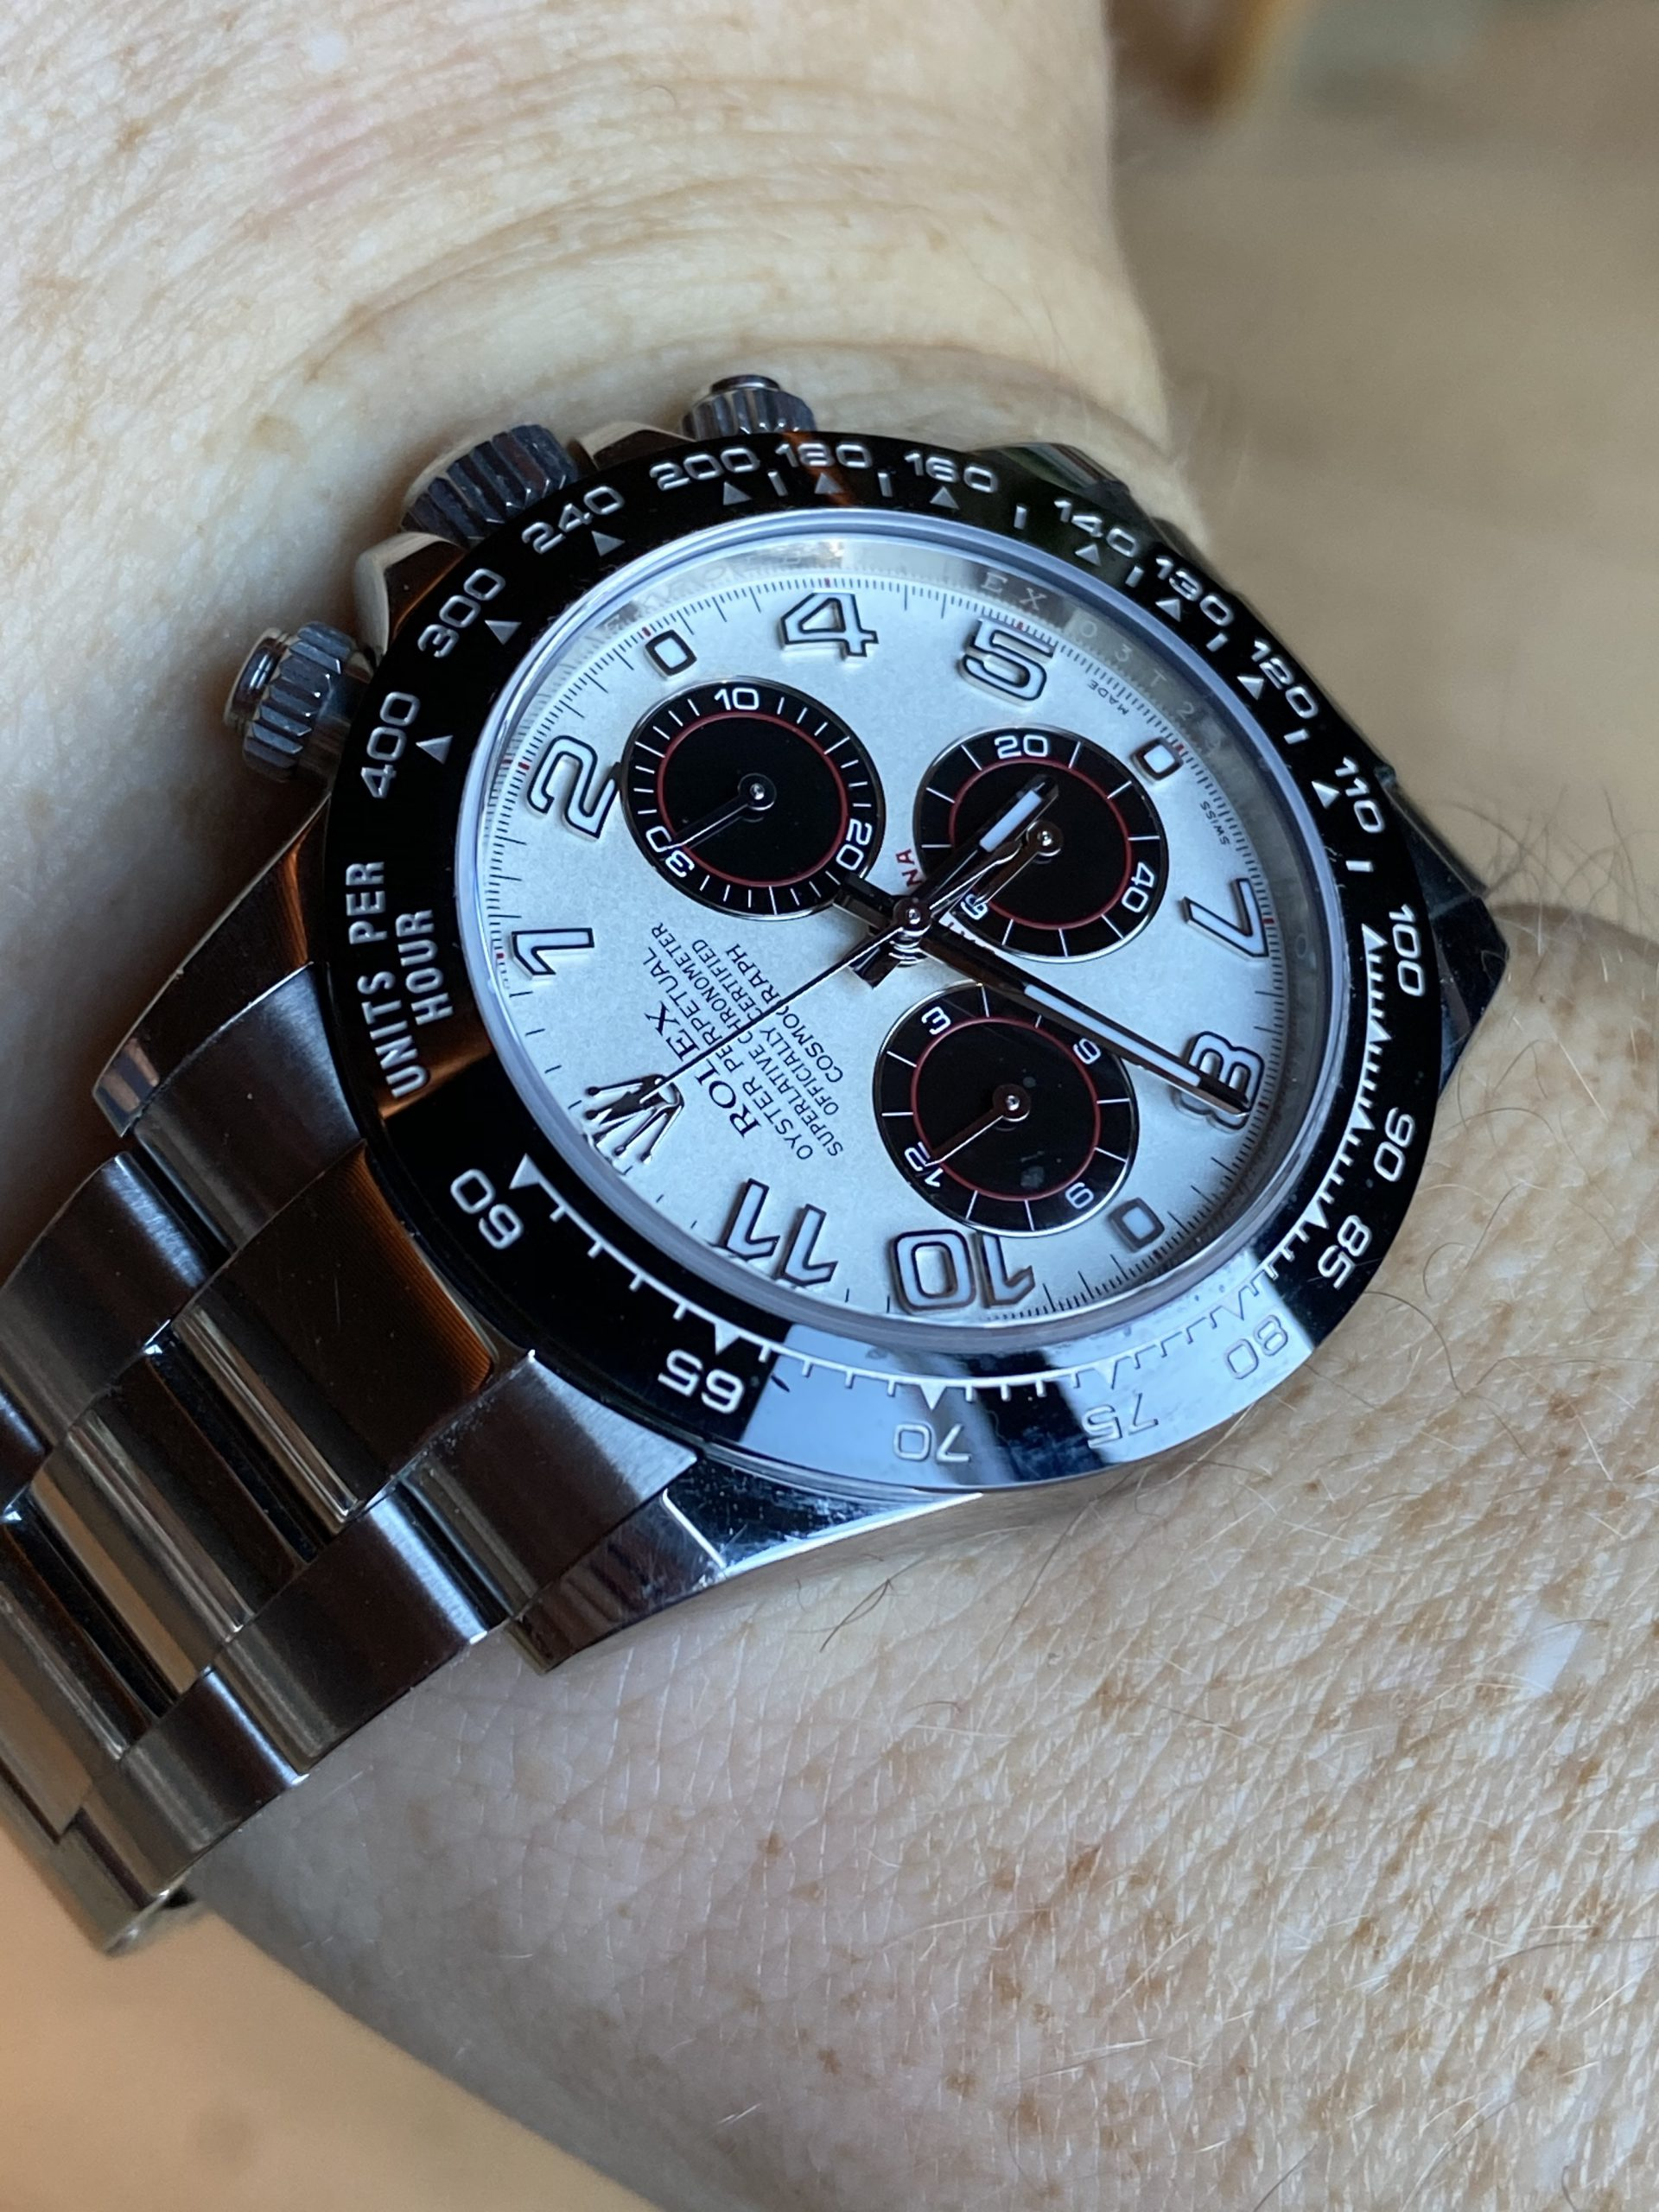 What is it with Perth and Daytonas? Glenn explains his 'unusual' 116500LN in the days after Horology House scandal